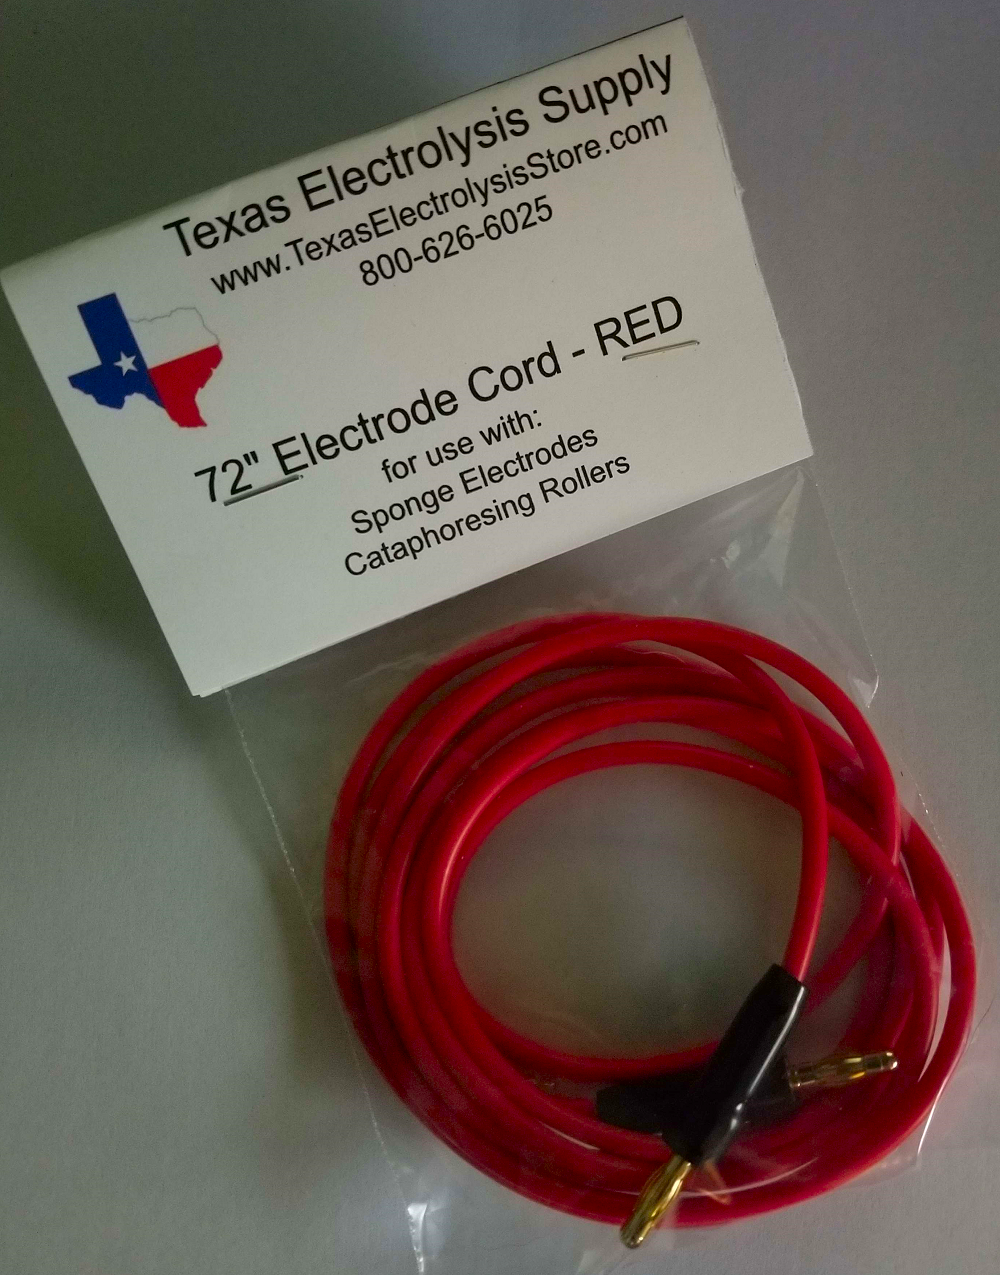 Electrode Cord - RED